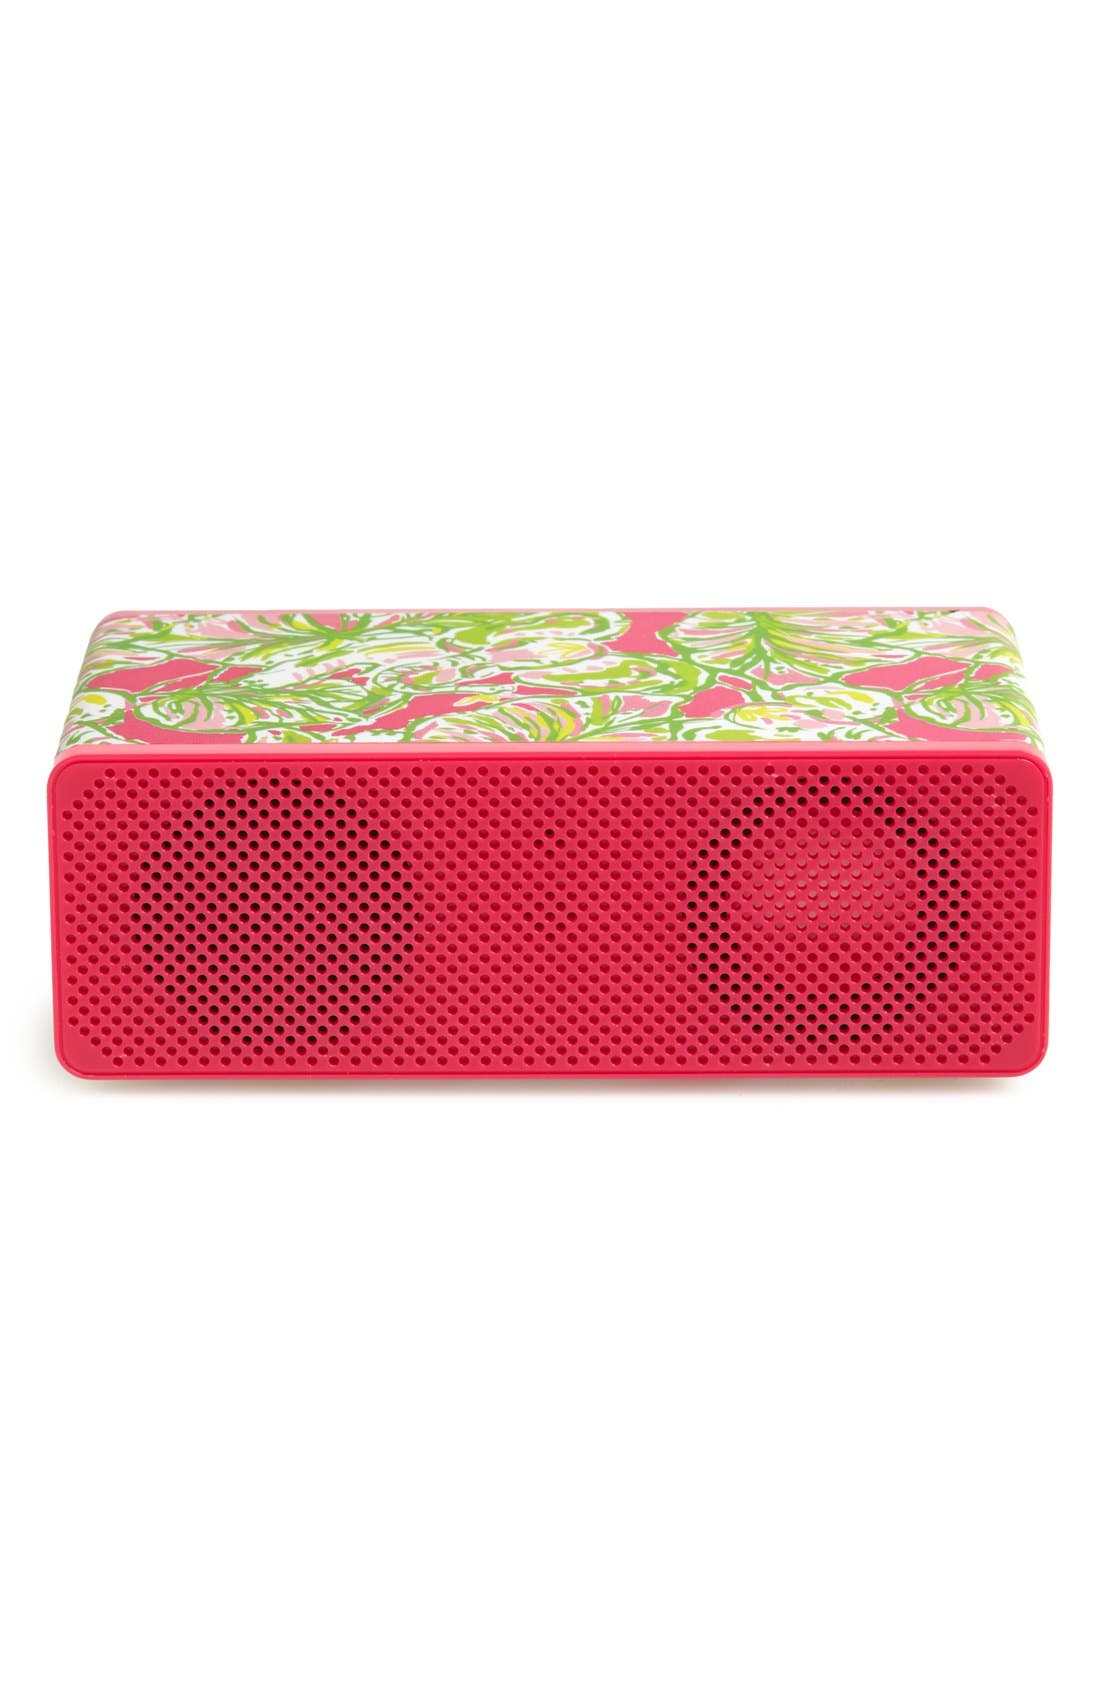 Main Image - Lilly Pulitzer® 'Elephant Ear' Wireless Bluetooth® Speaker